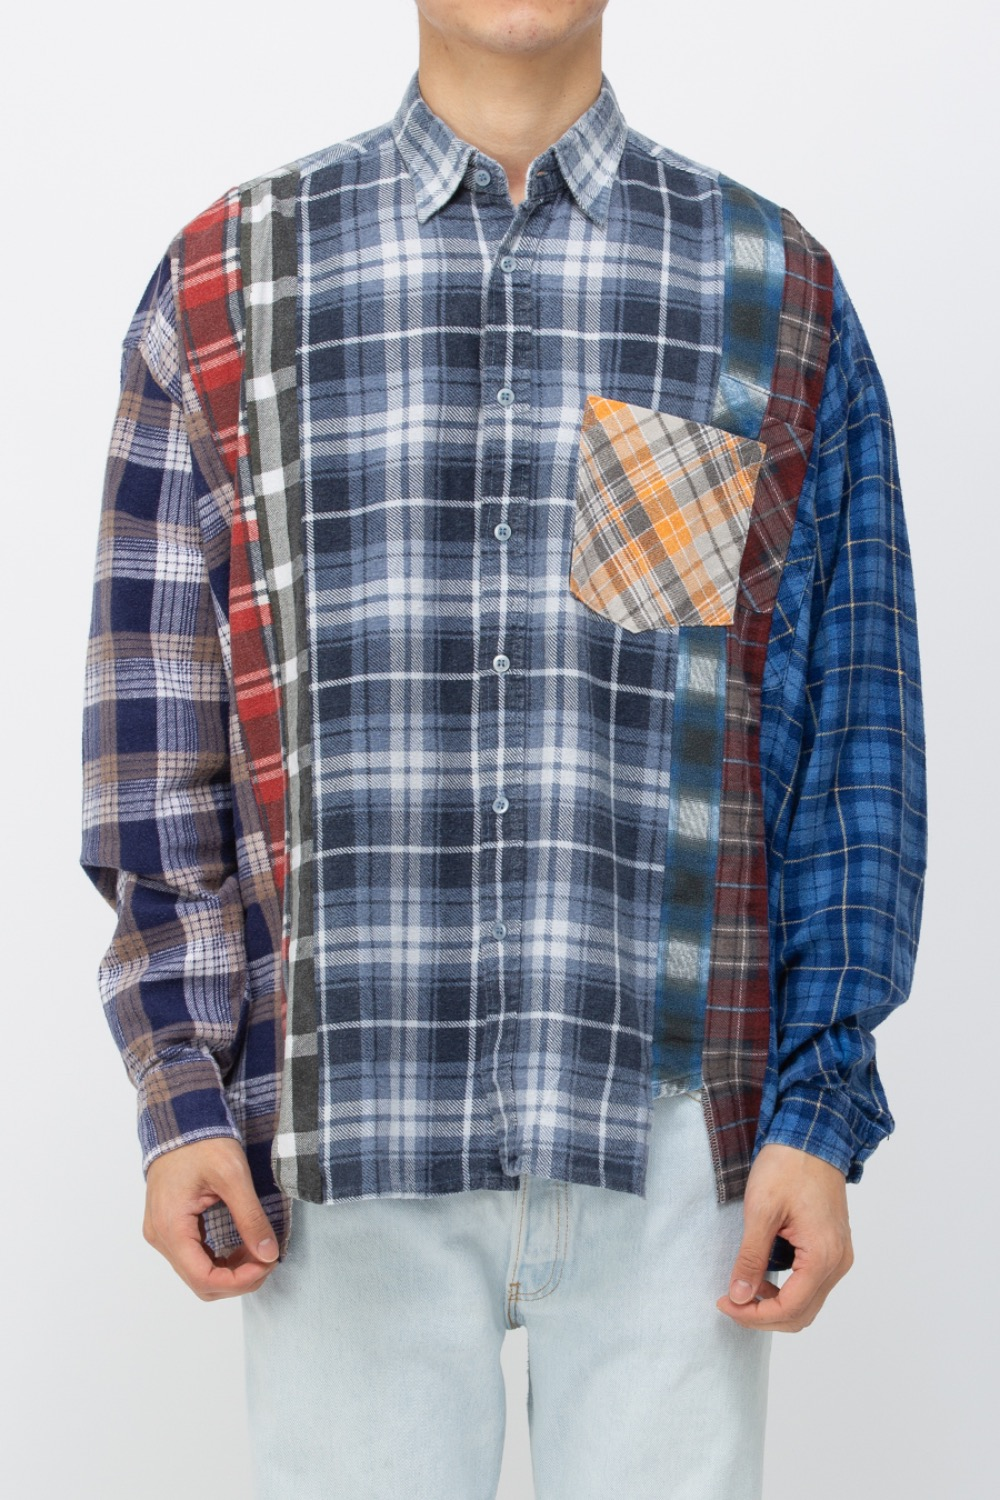 (WIDE-9)REBUILD BY NEEDLES FLANNEL SHIRT - 7CUTS WIDE SHIRT